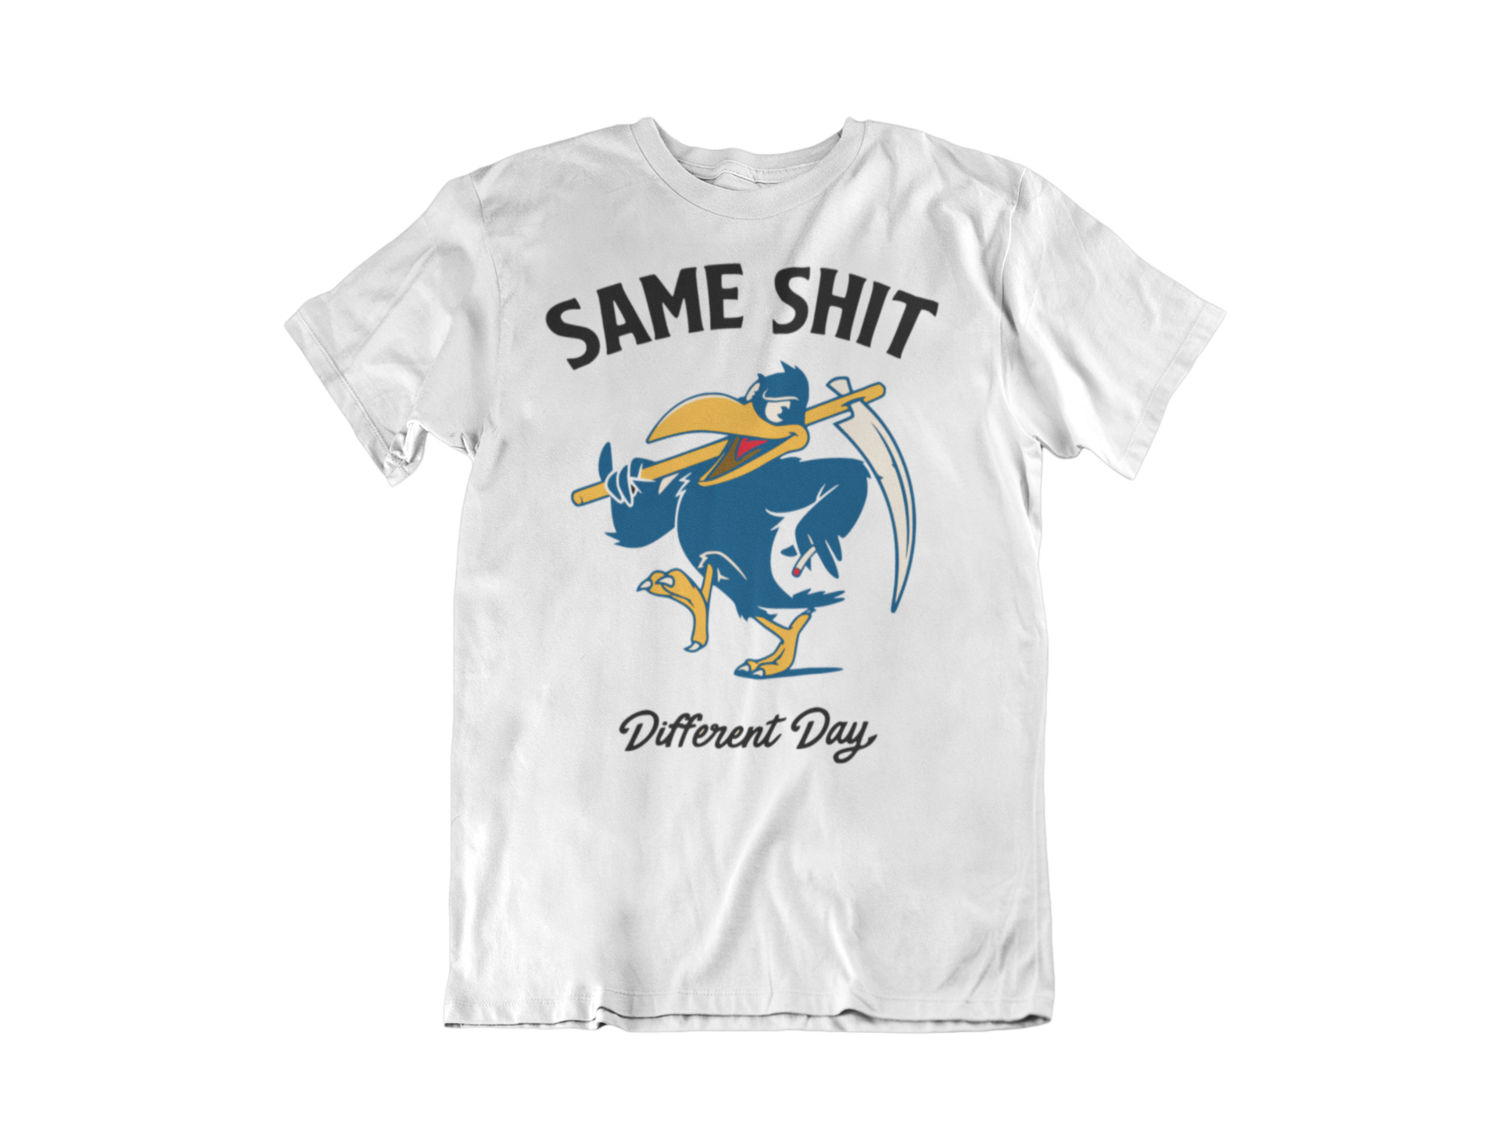 SAME SHIT DIFFERENT DAY T-SHIRT FOR MEN